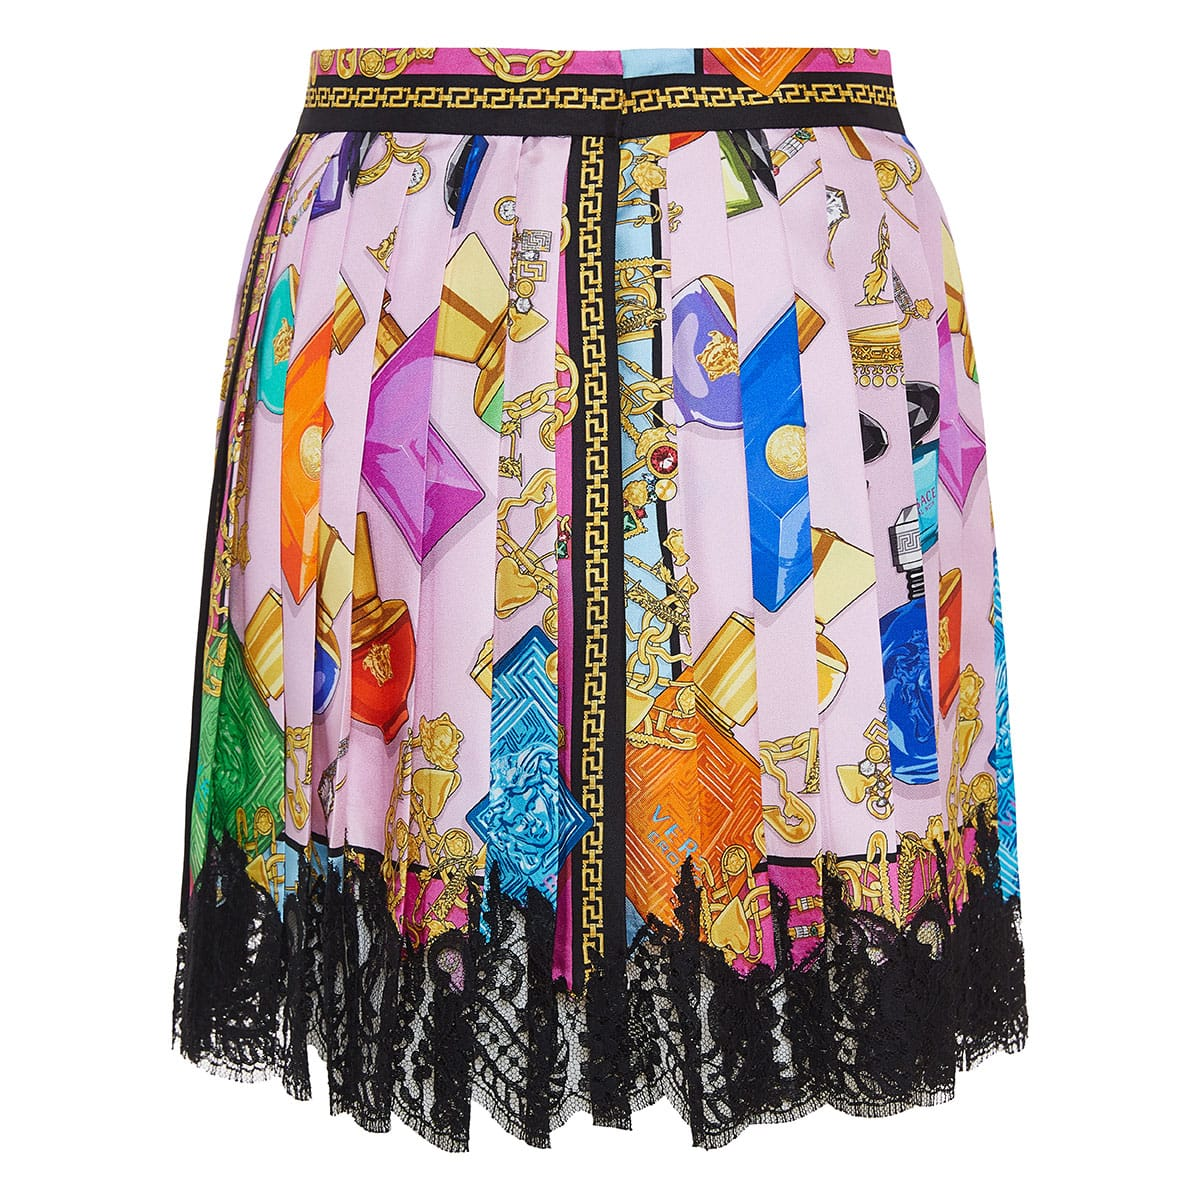 Lace-trimmed printed mini skirt